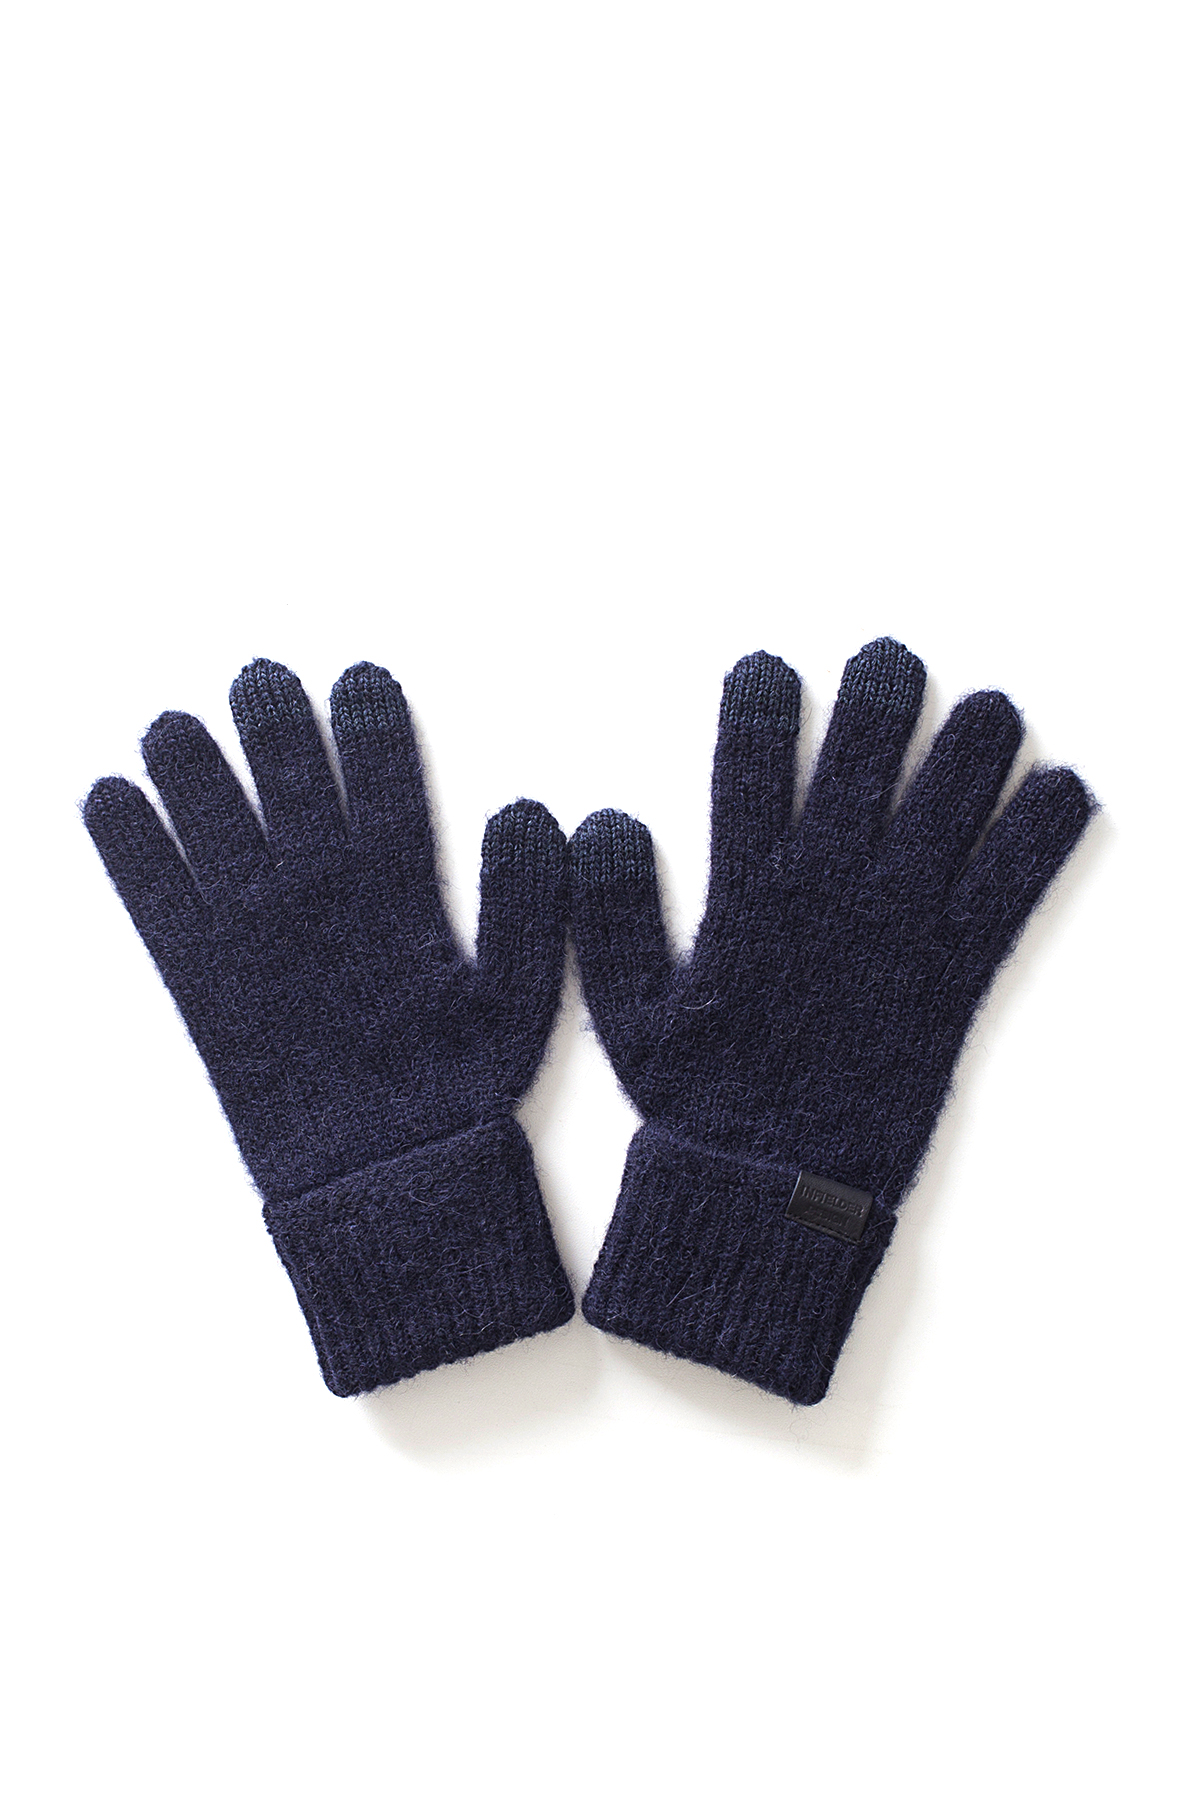 Infielder Design : Baby Gloves (Navy)